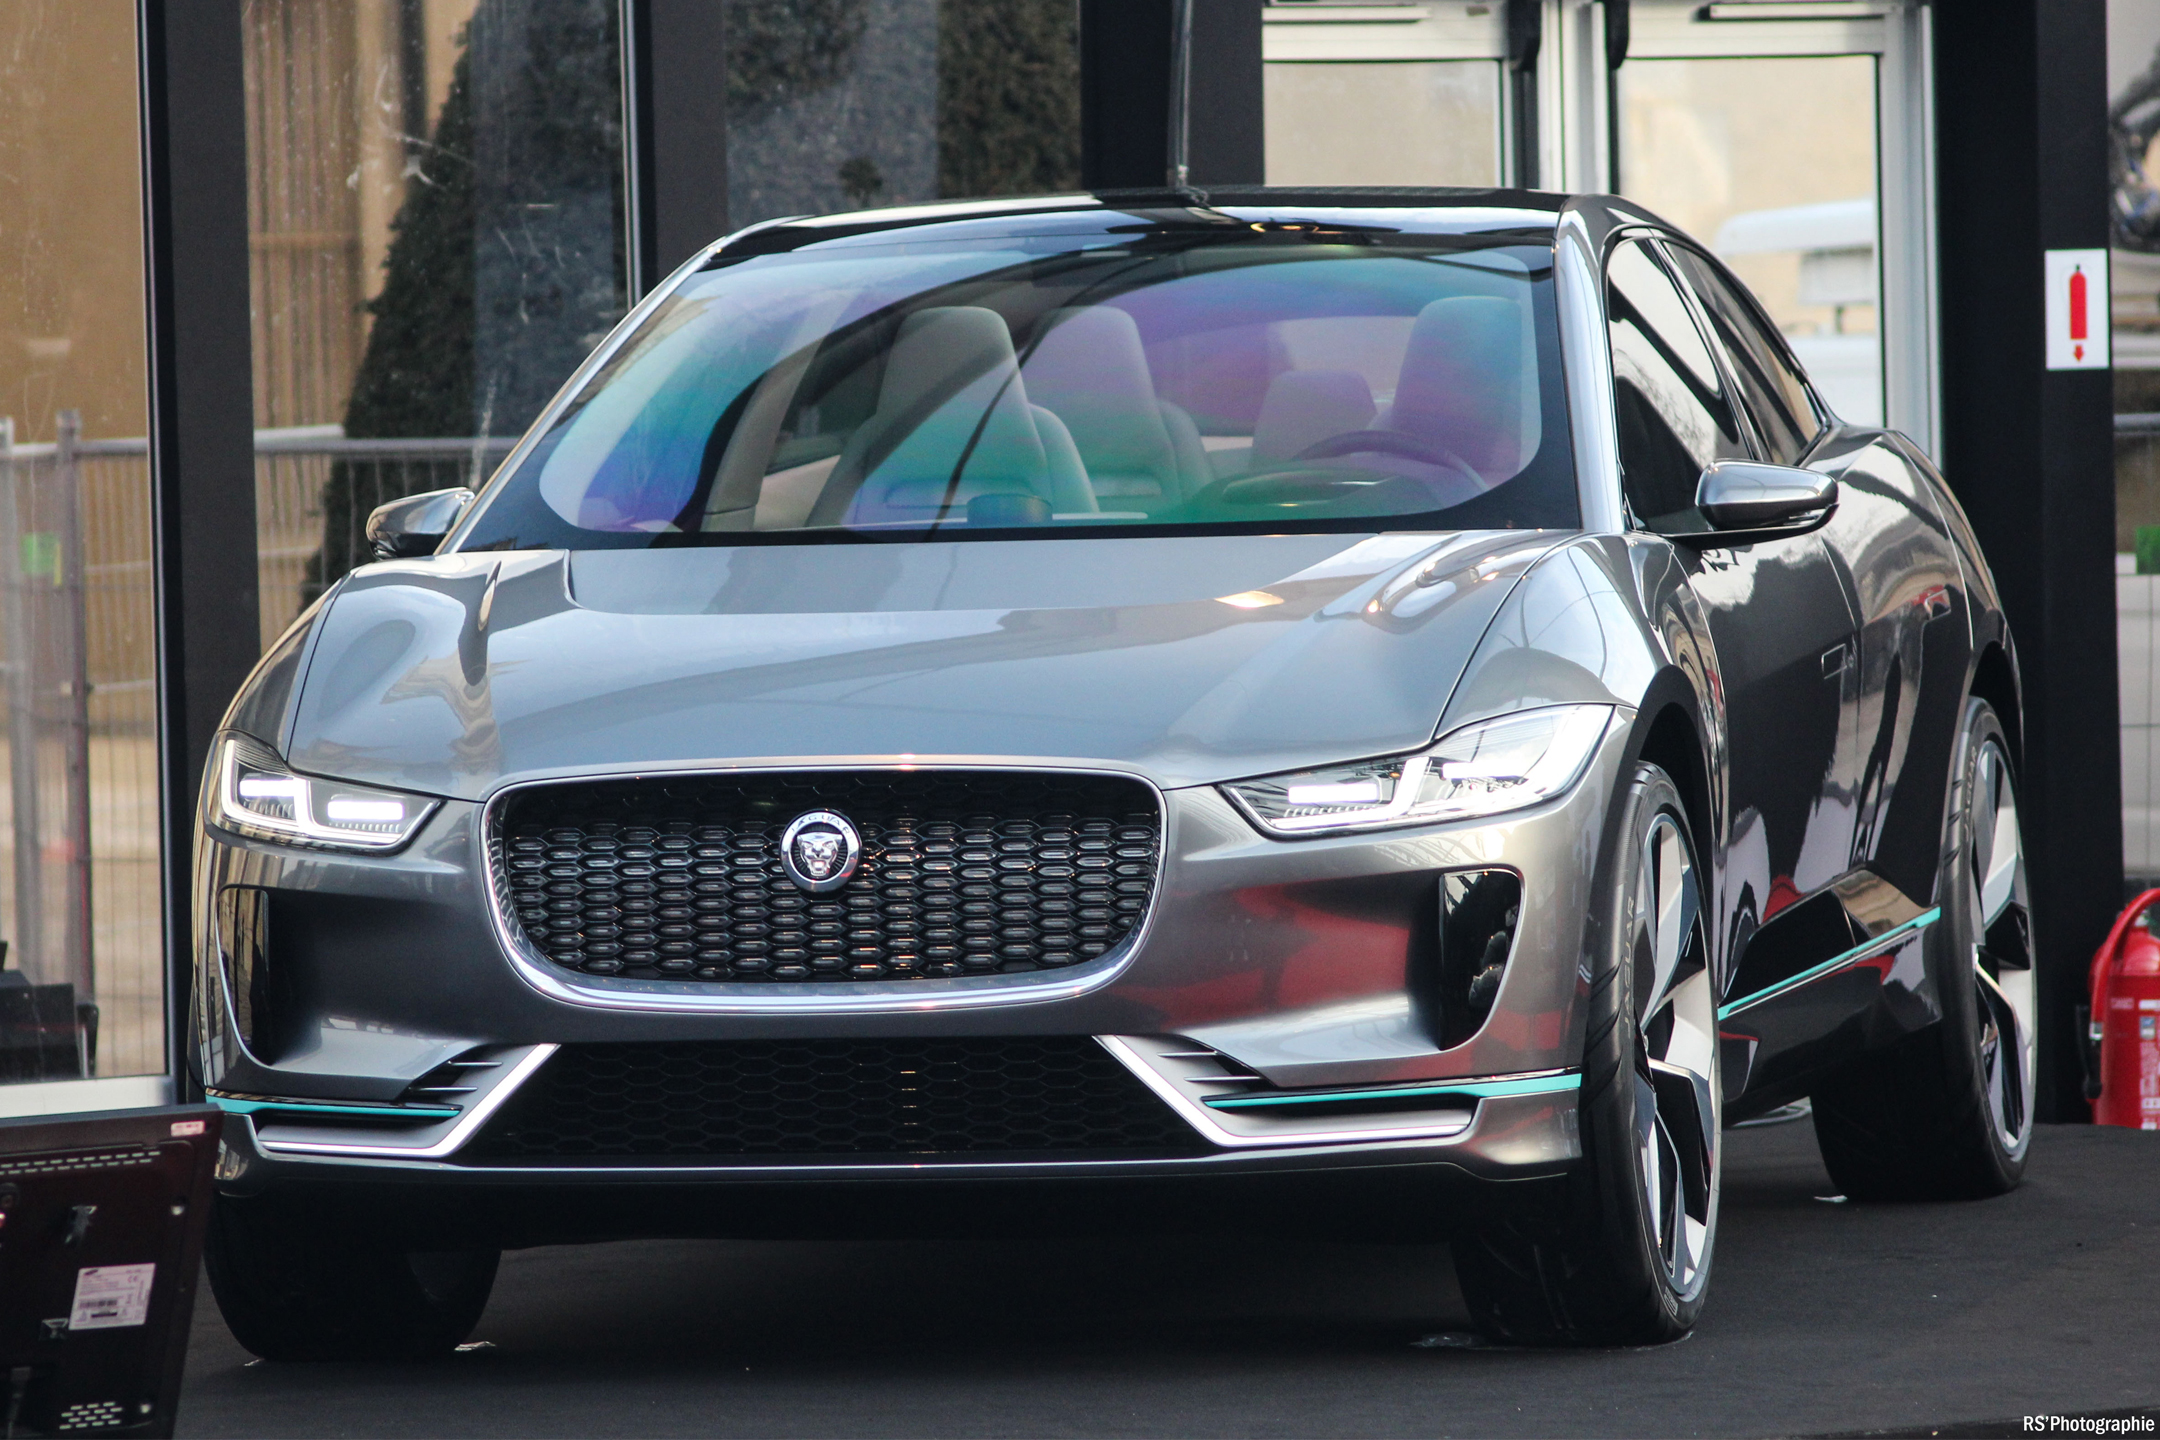 Jaguar I-PACE - 2016 - front - FAI 2017 - photo by Arnaud Demasier RS Photographie